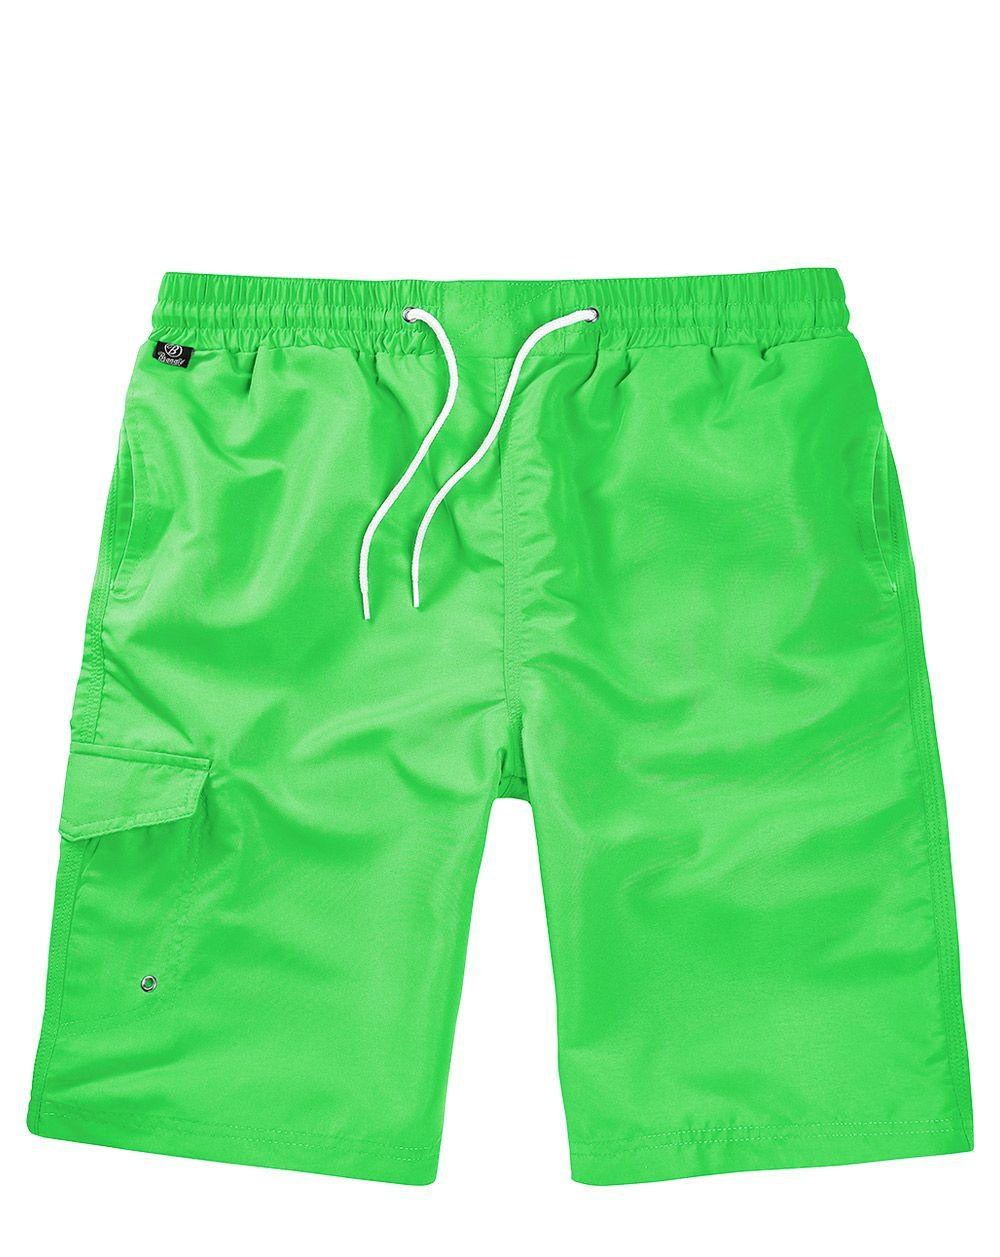 Image of   Brandit Badeshorts (Lime, L/XL)